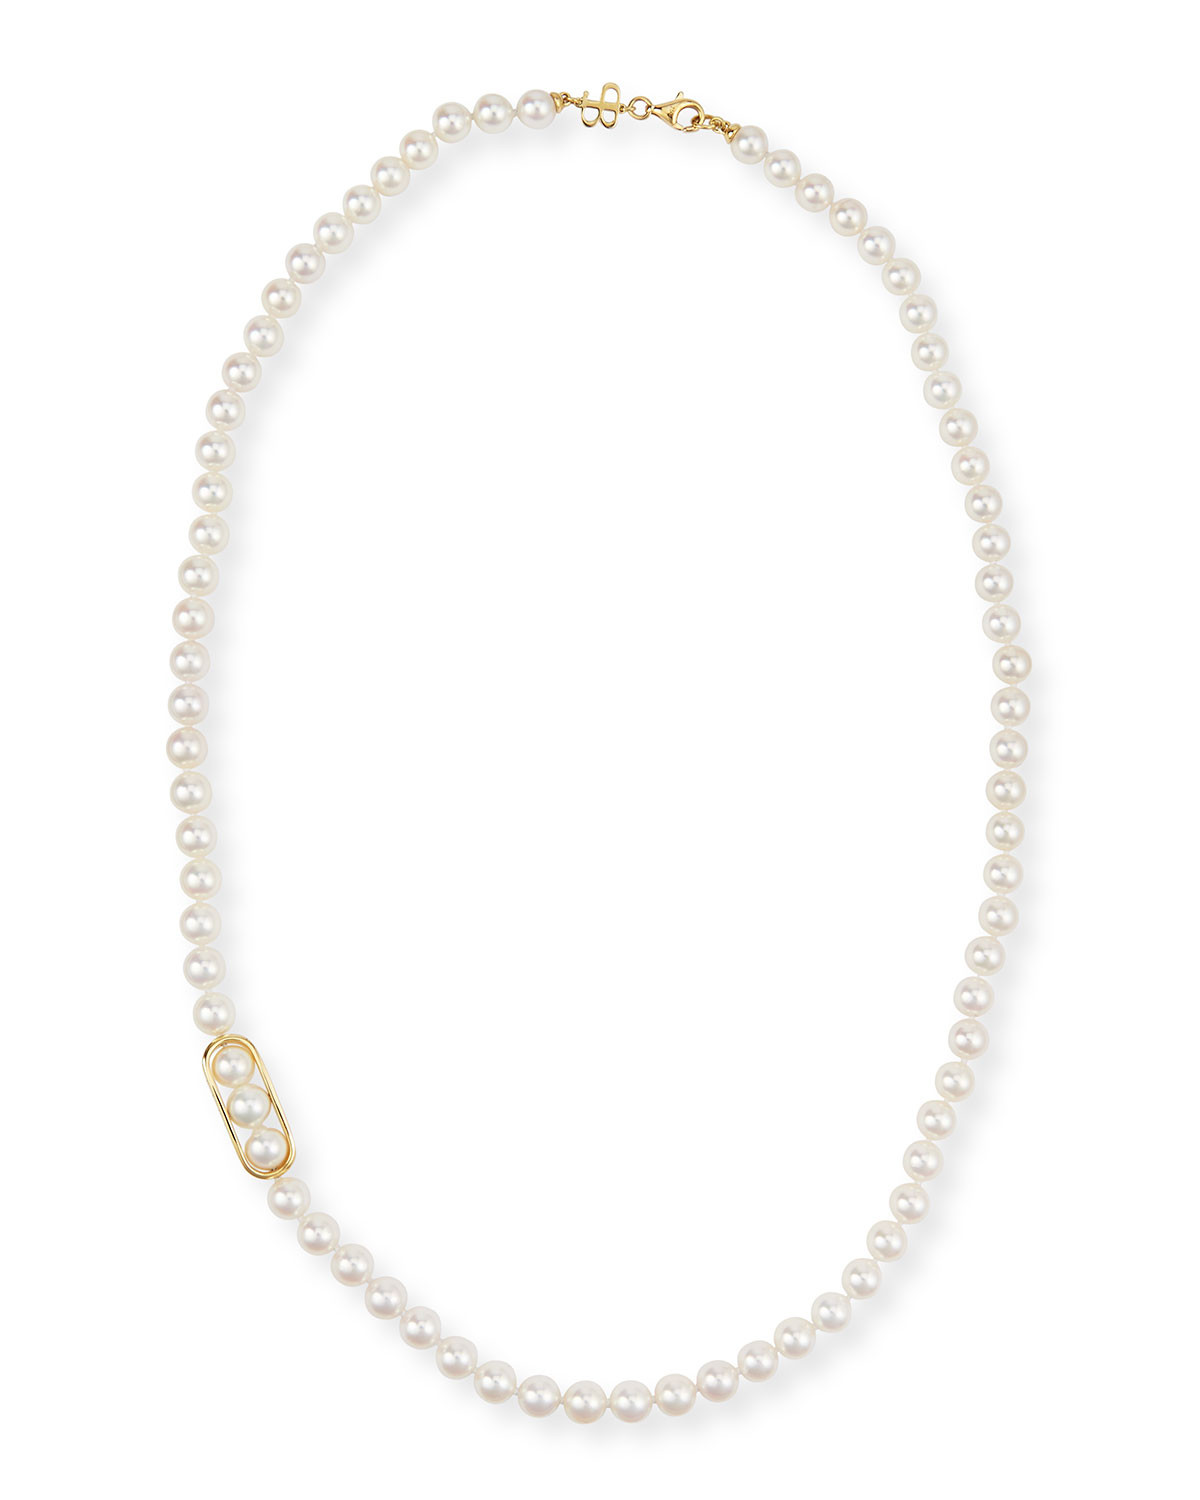 18K Gold Akoya Pearl Necklace, 24